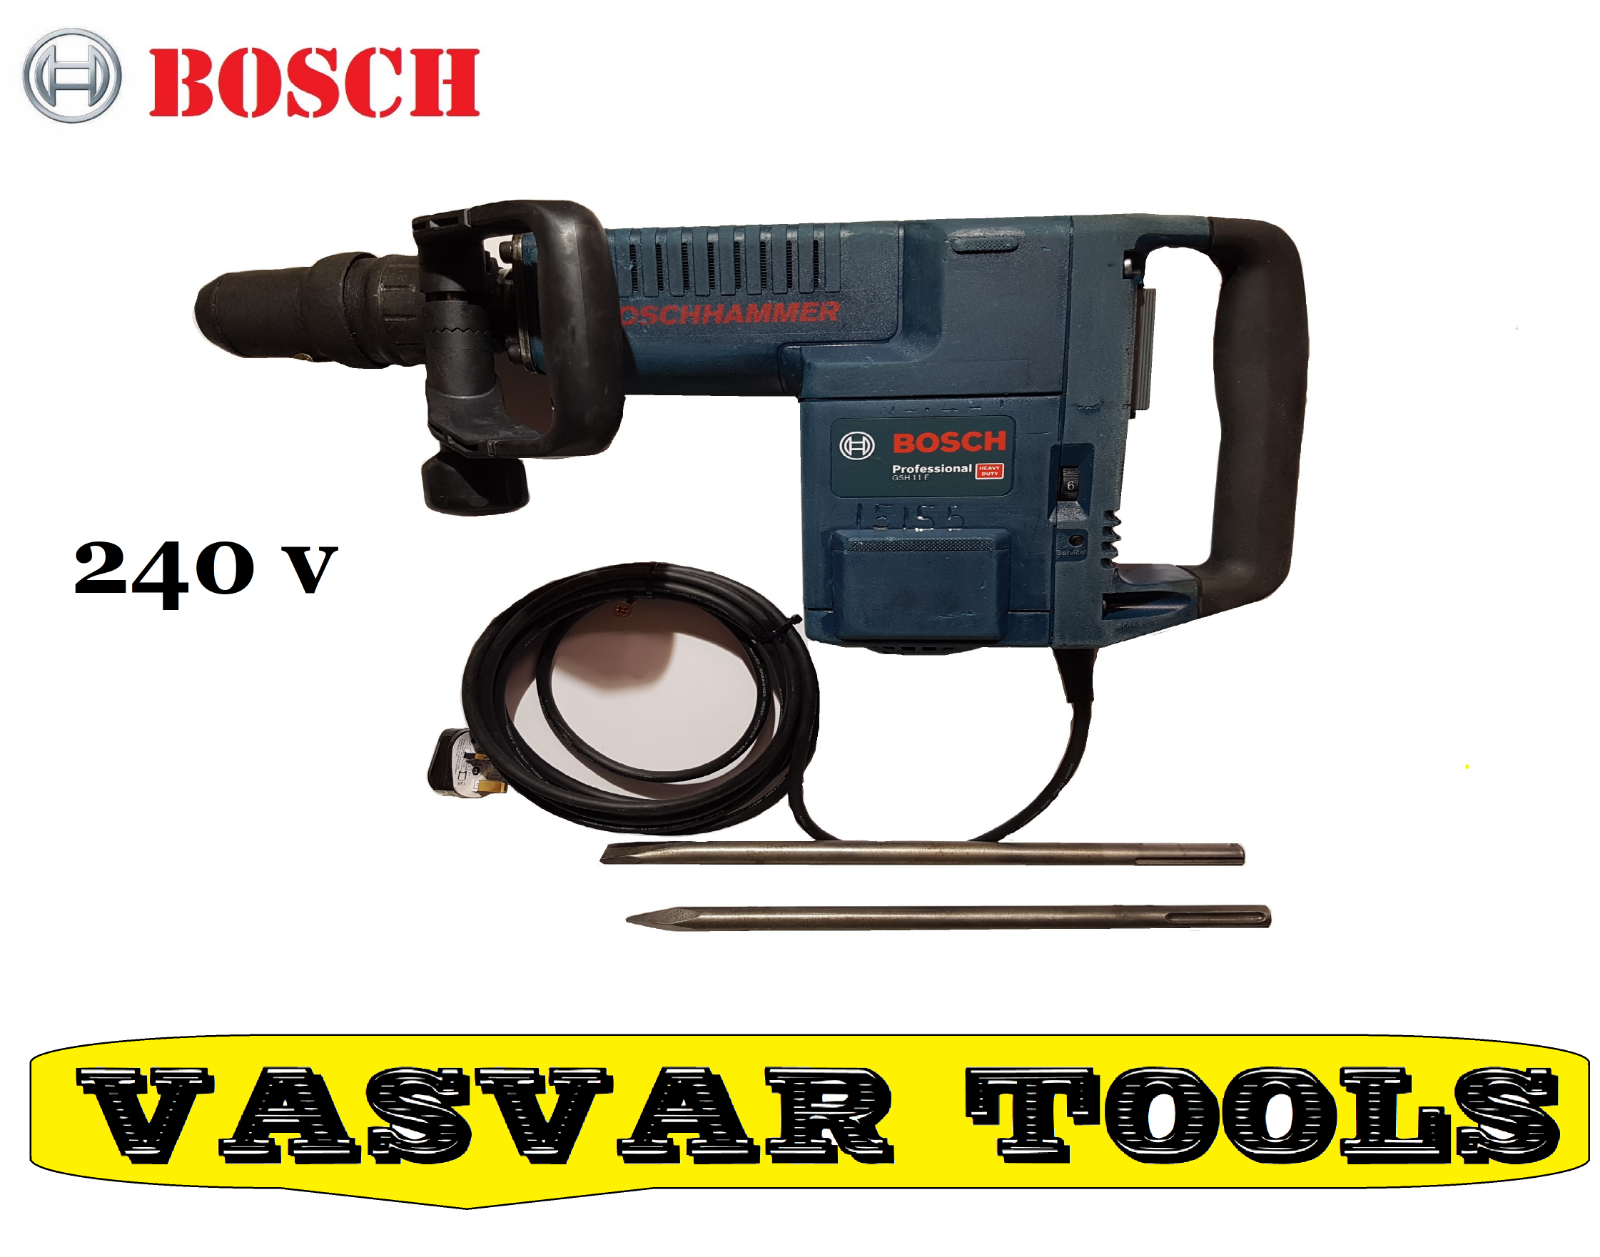 BOSCH  DEMOLITION HAMMER  GSH 11 E  DEMOLATION HAMMER  240V